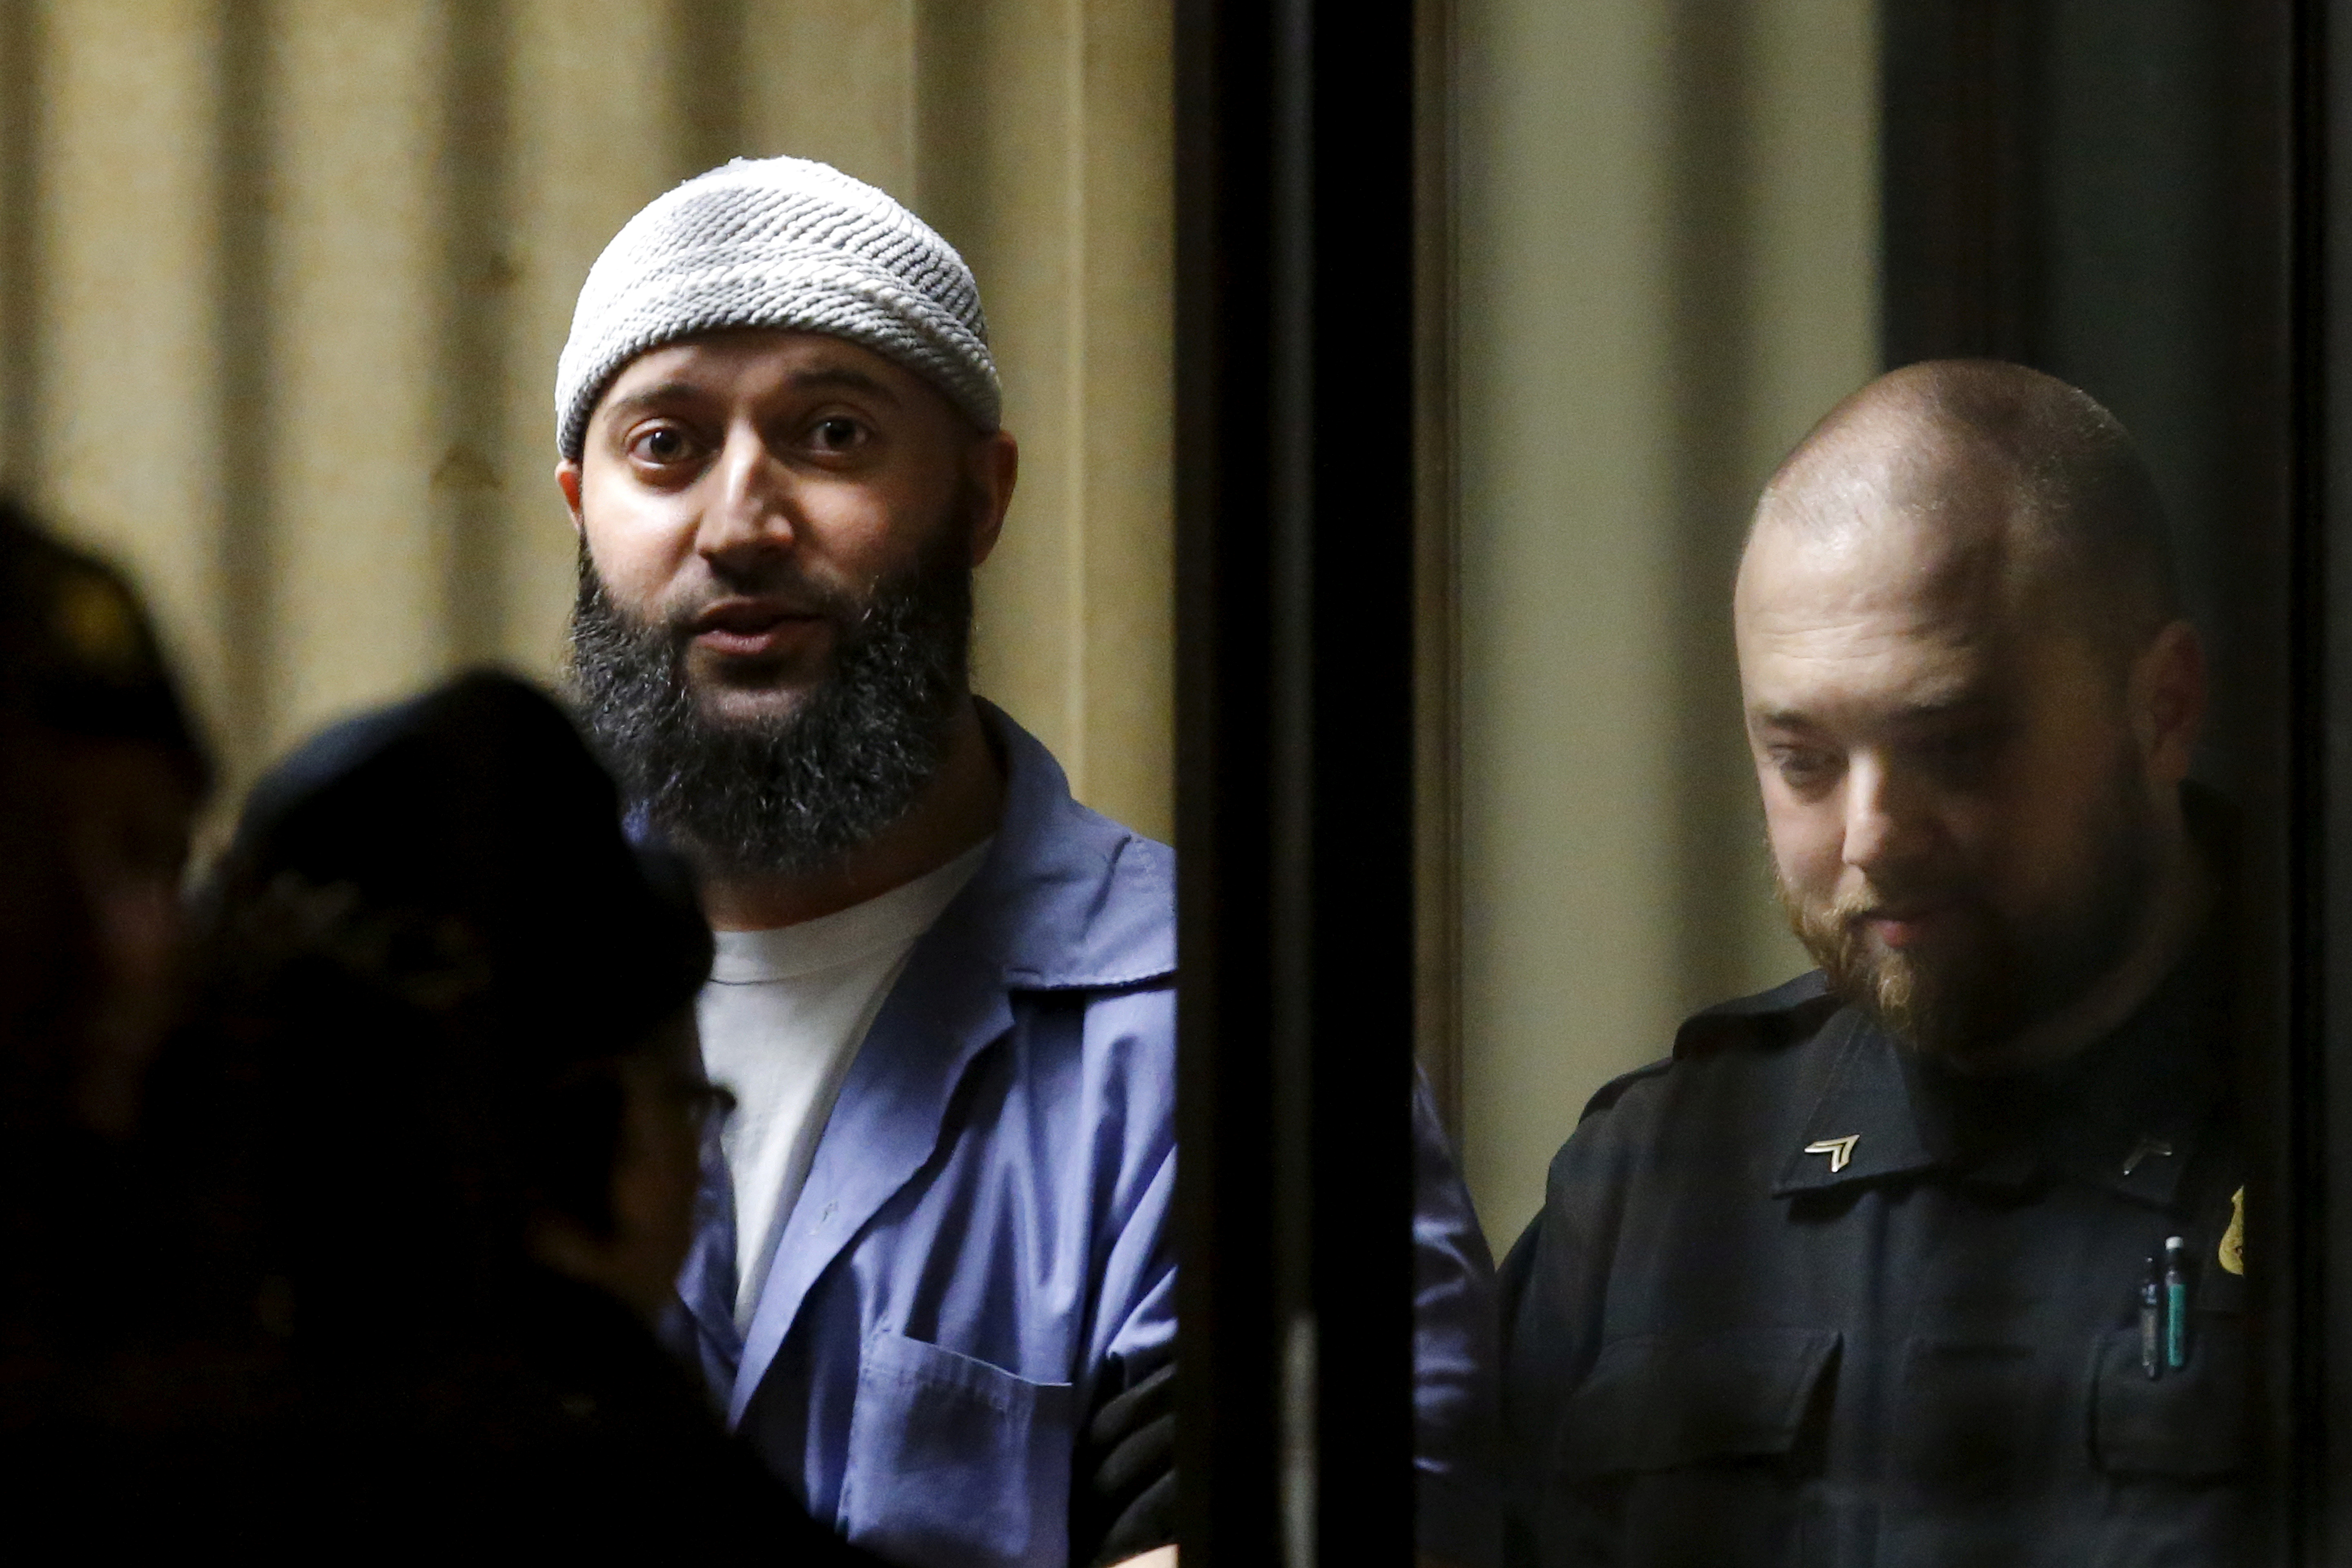 Convicted murderer Adnan Syed leaves the Baltimore City Circuit Courthouse in Baltimore, Maryland on February 5, 2016. REUTERS/Carlos Barria